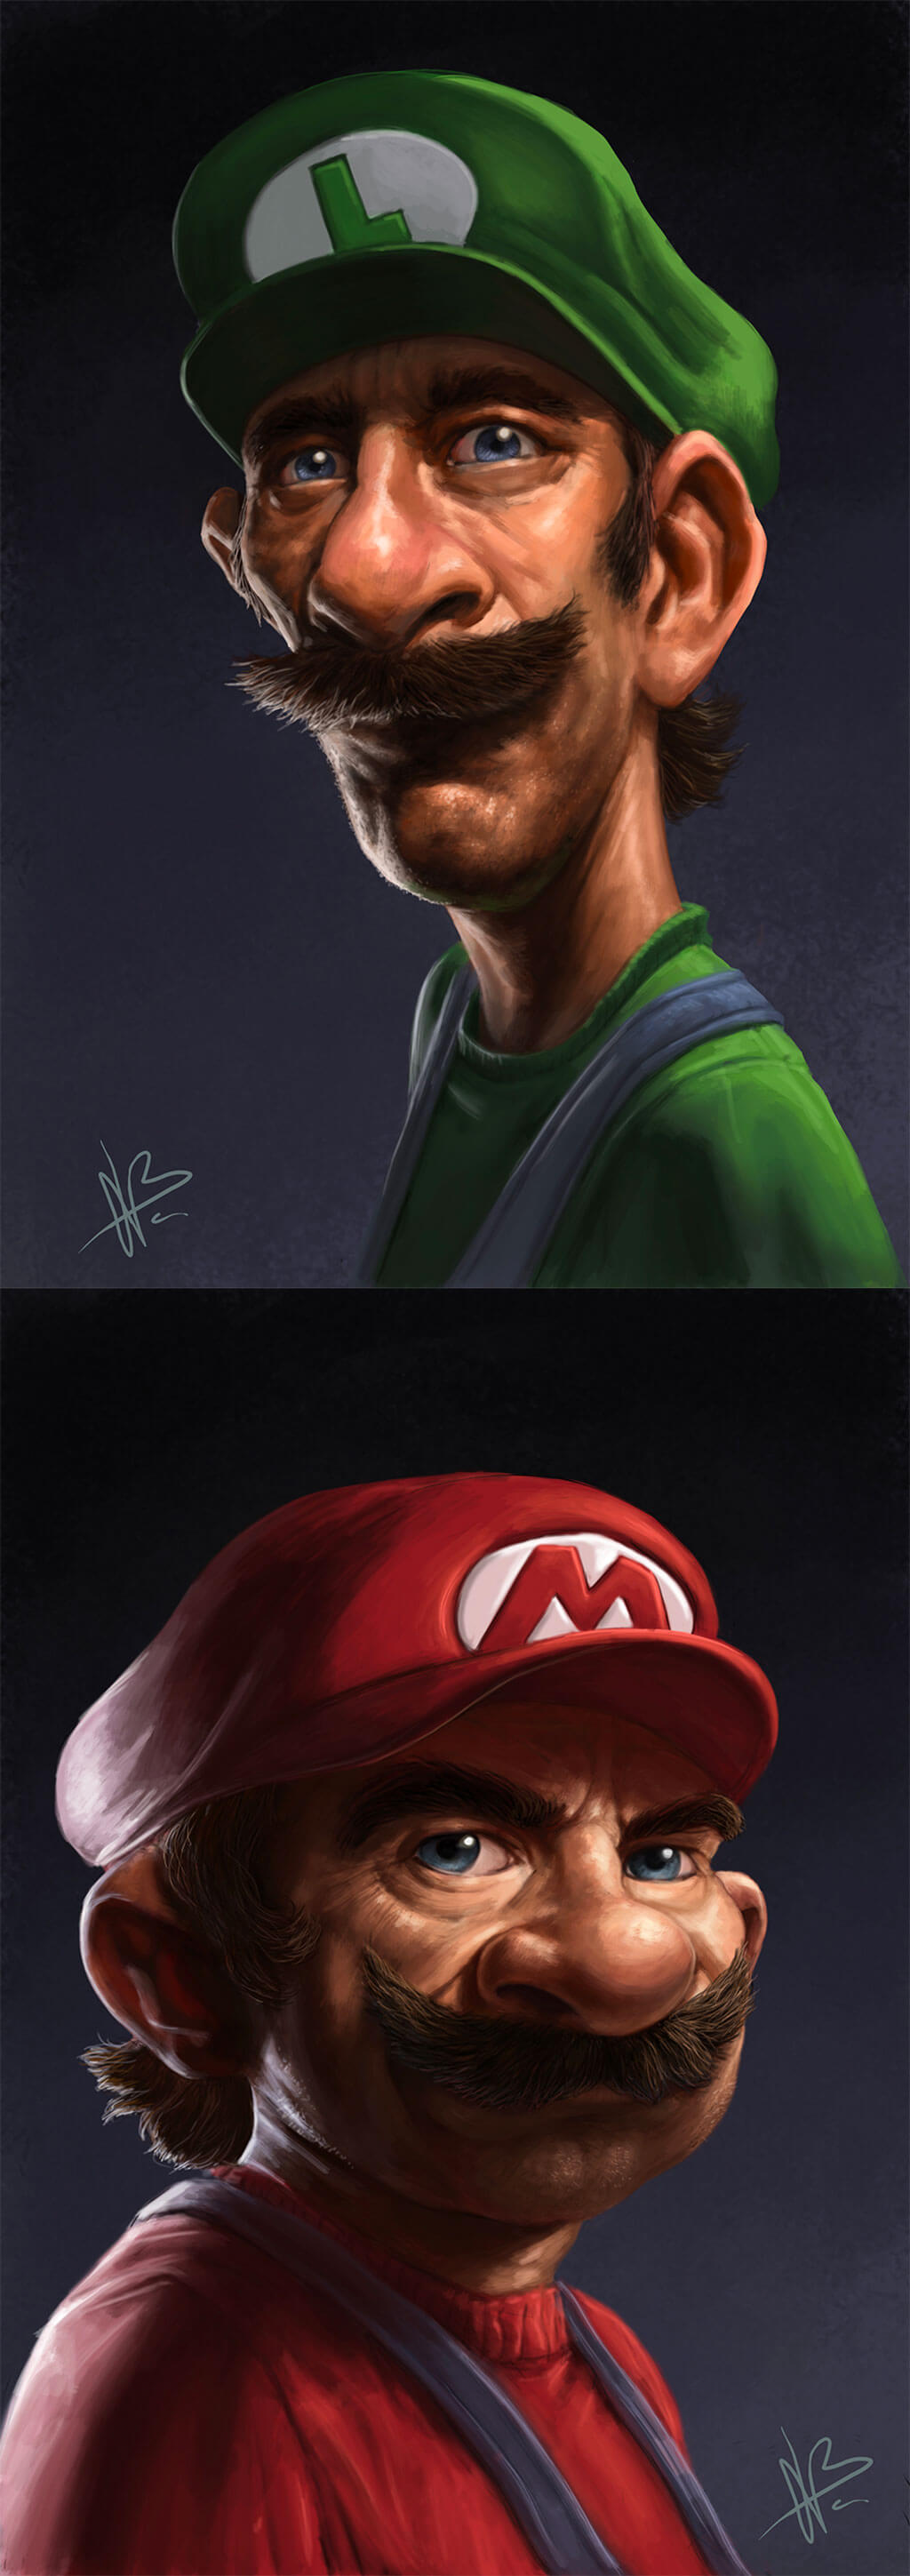 Mario Fan Art by Nuño Benito